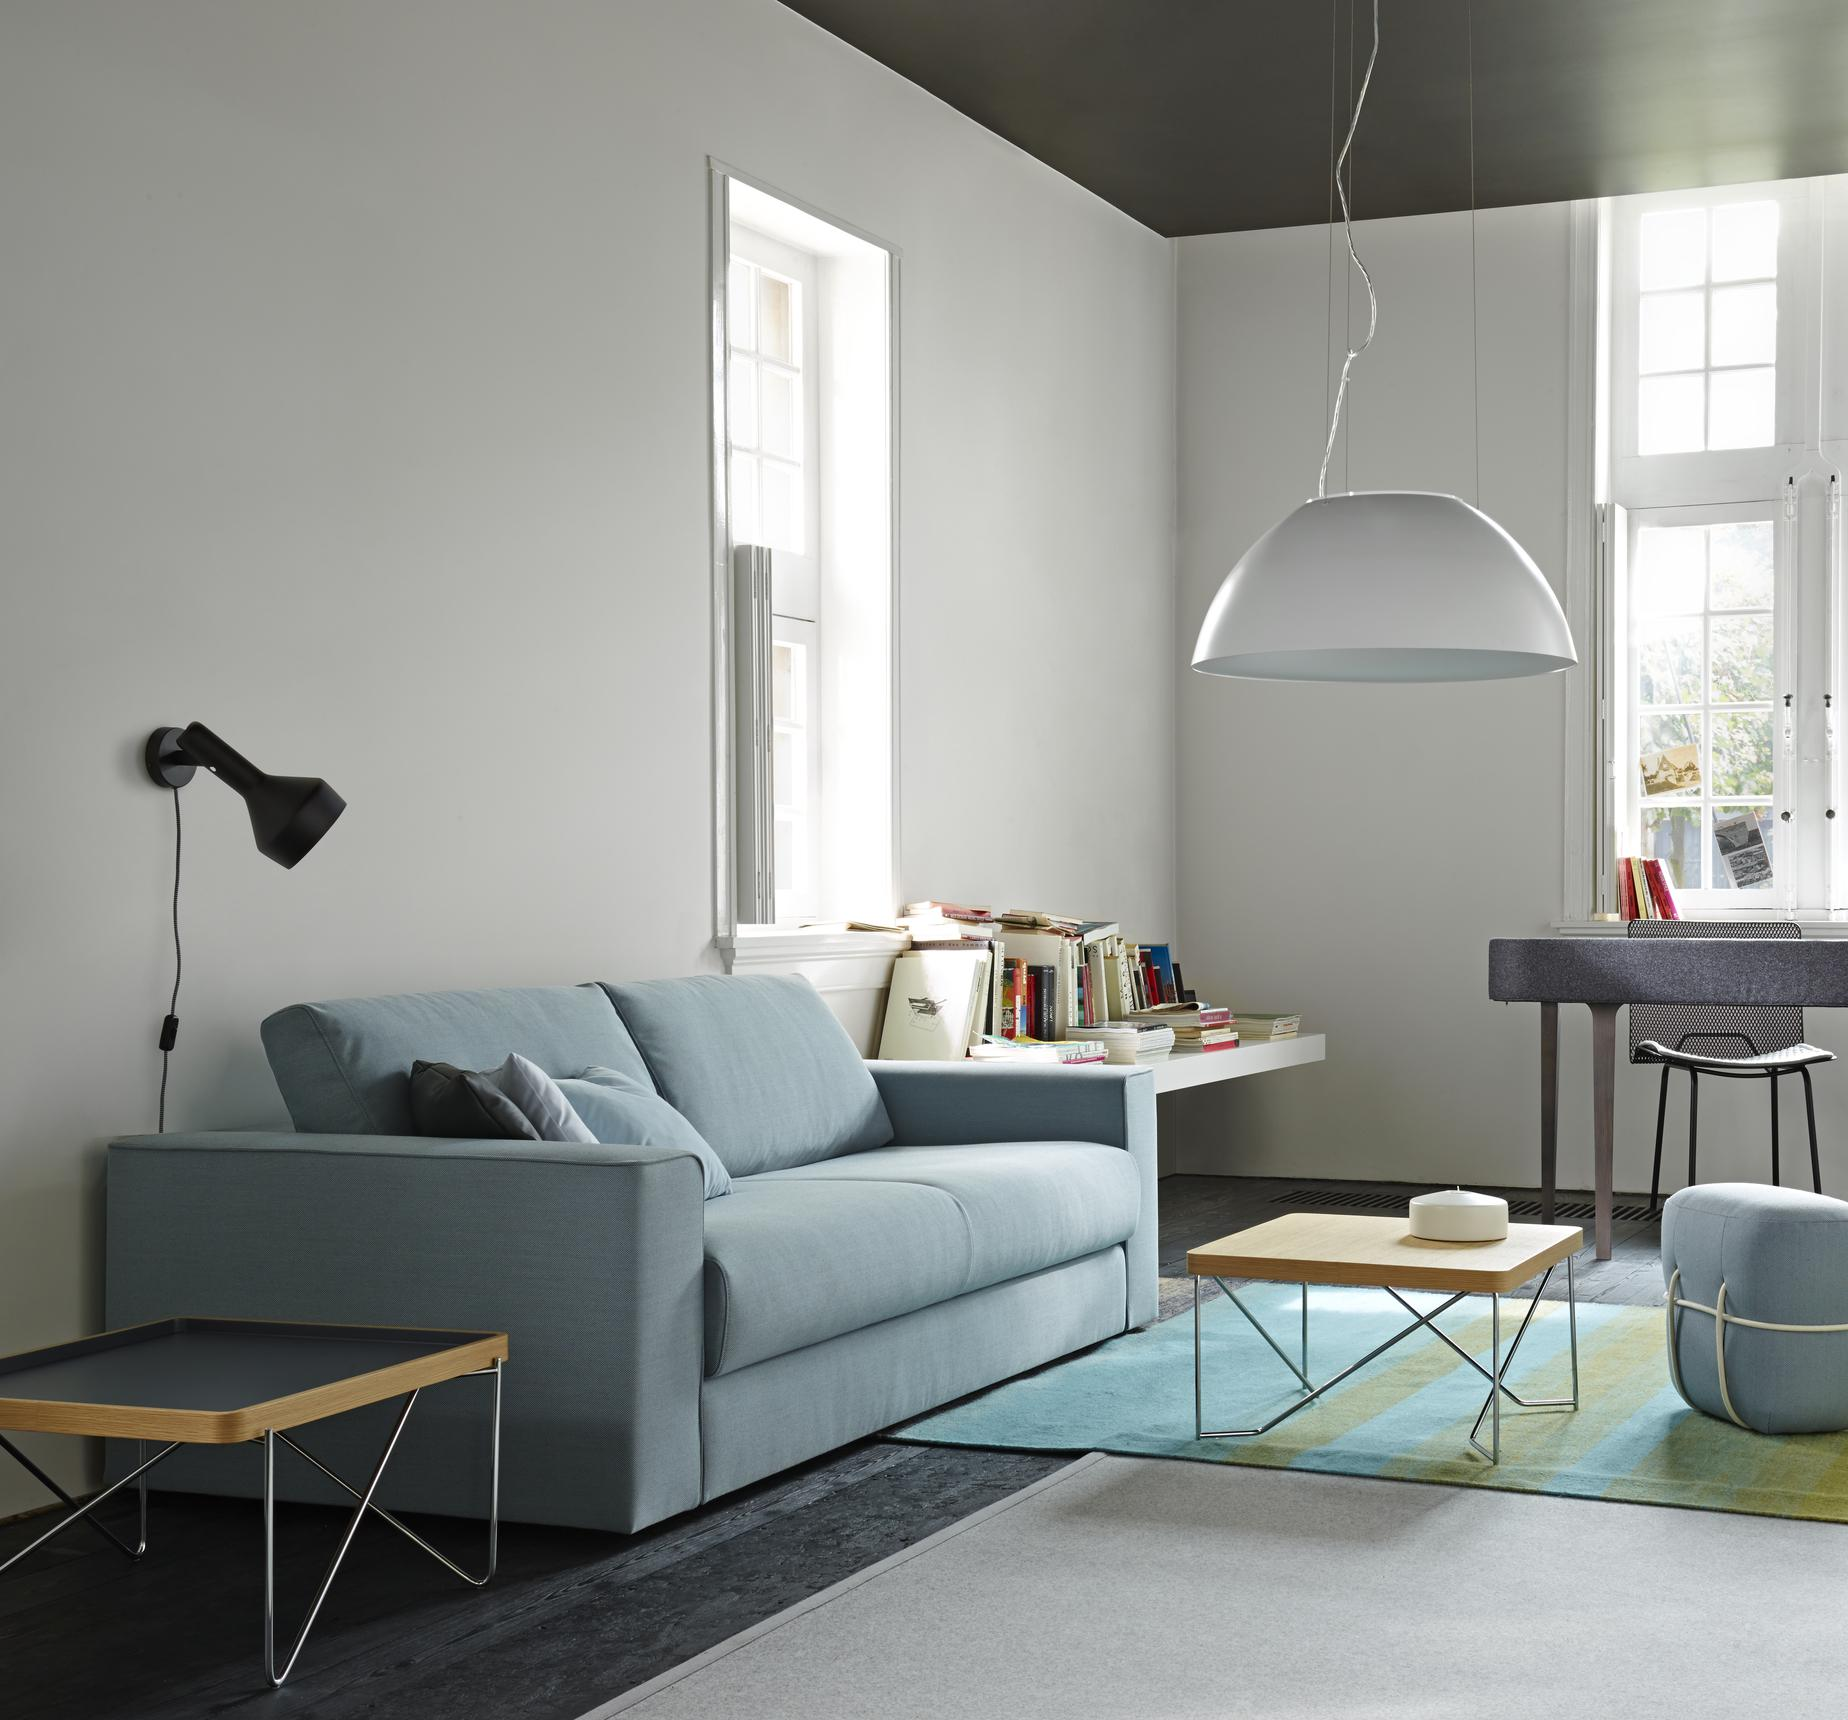 Do Not Disturb Sofa Beds From Designer Ligne Roset - Ligne Roset Schlafsofa